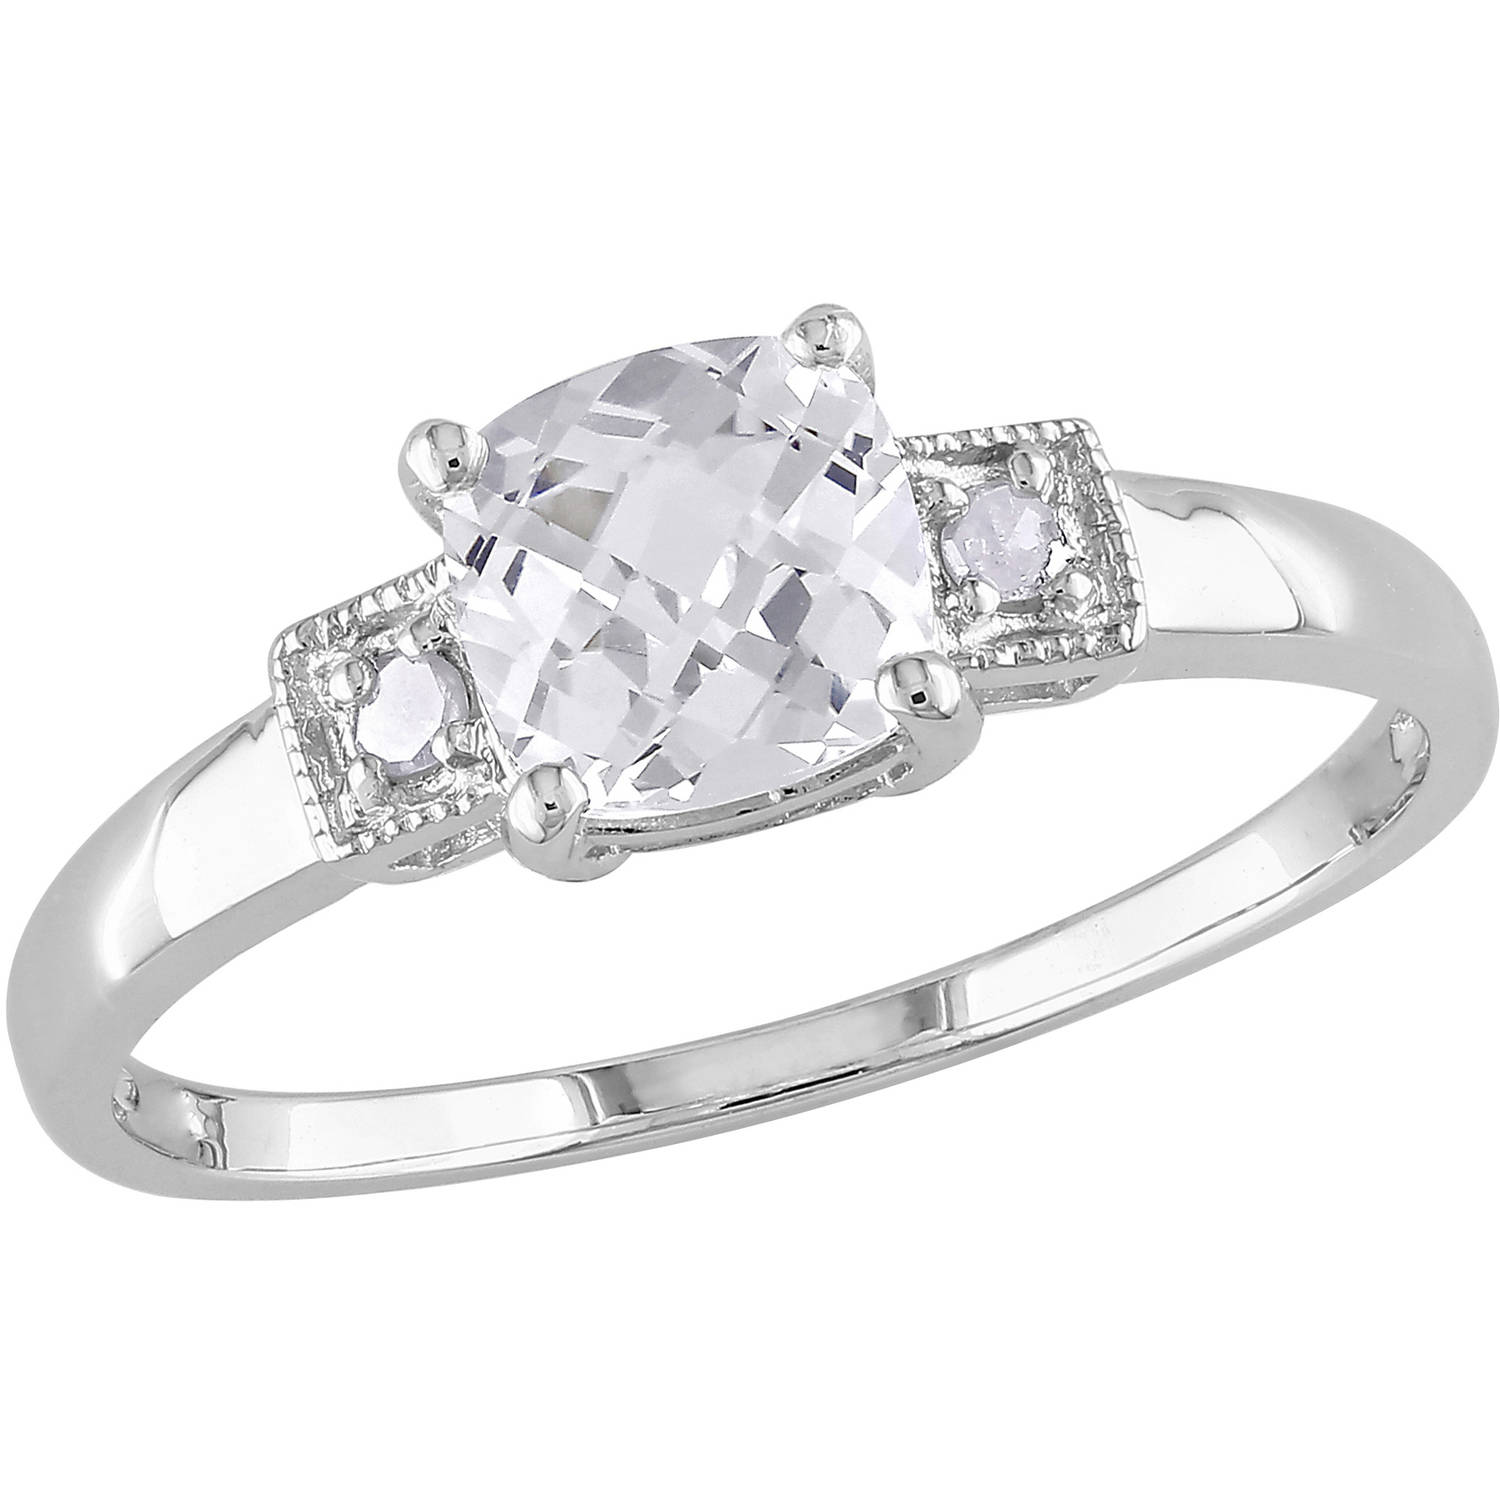 Miabella 1-1/4 Carat T.G.W. Cushion-Cut Created White Sapphire and Diamond Accent Sterling Silver Engagement Ring